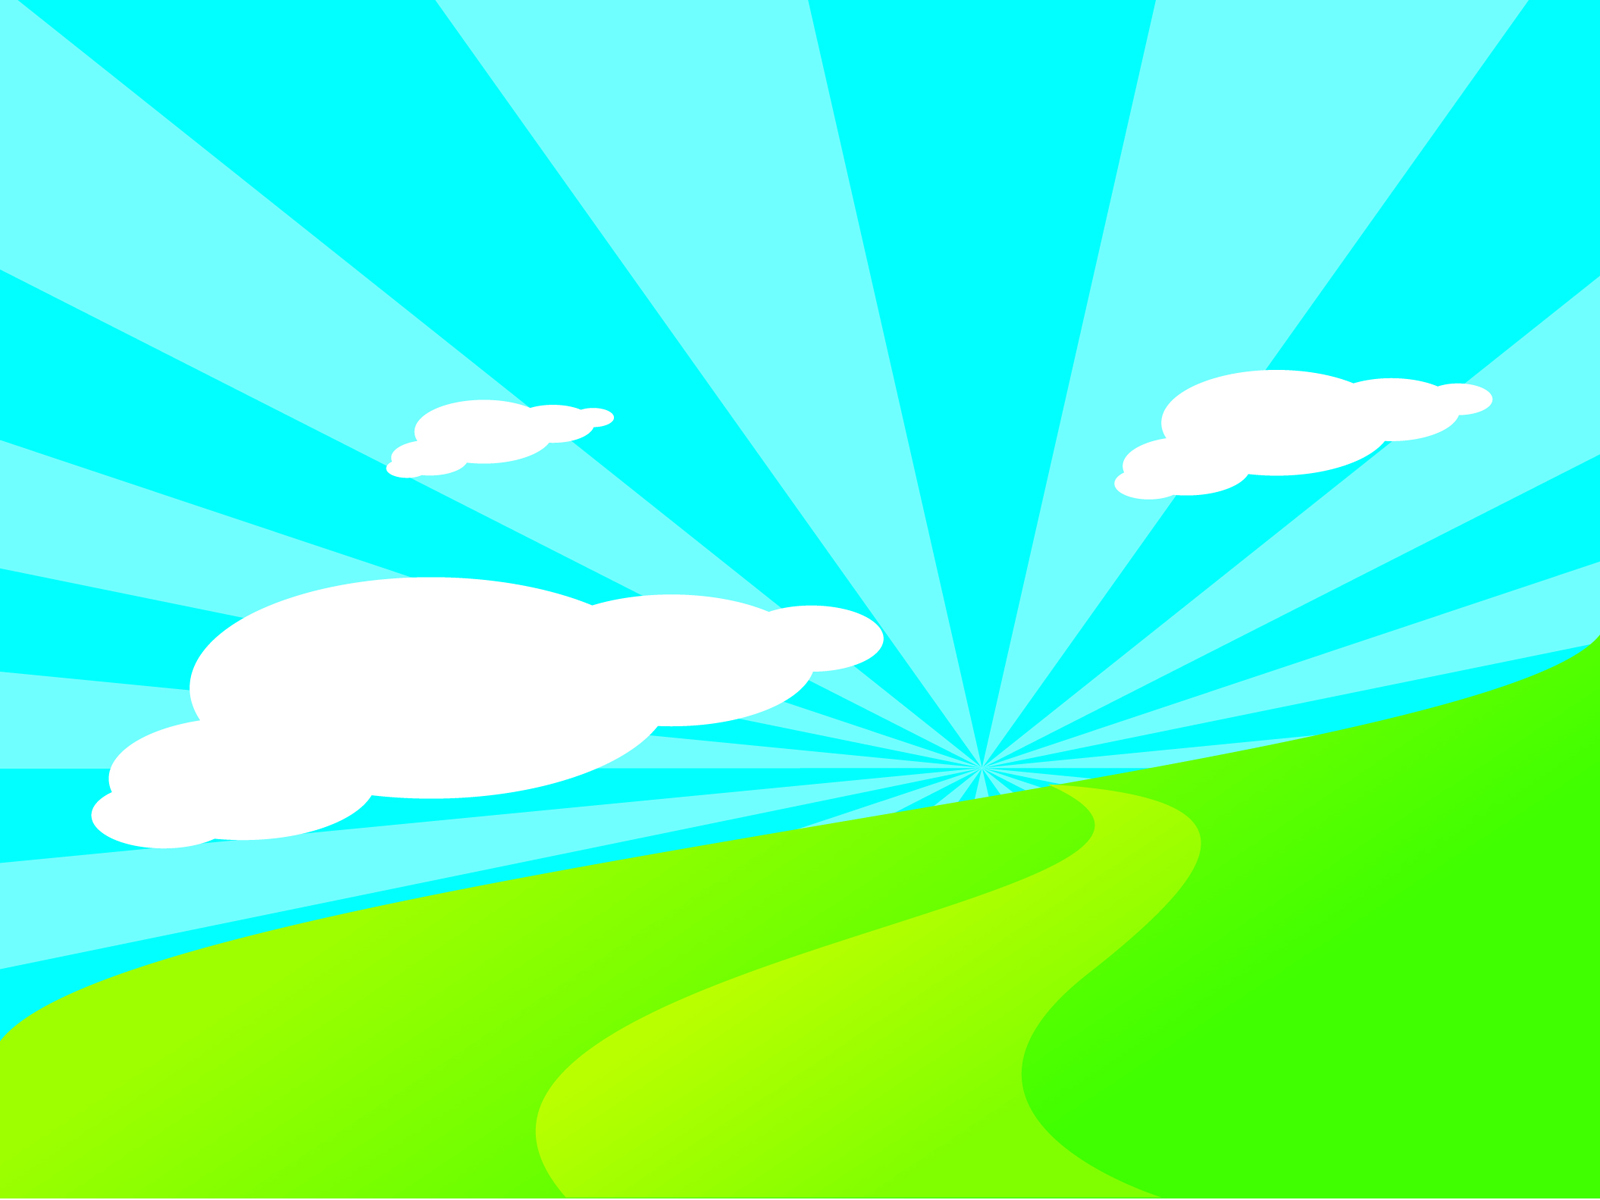 blue sky backgrounds blue green nature white